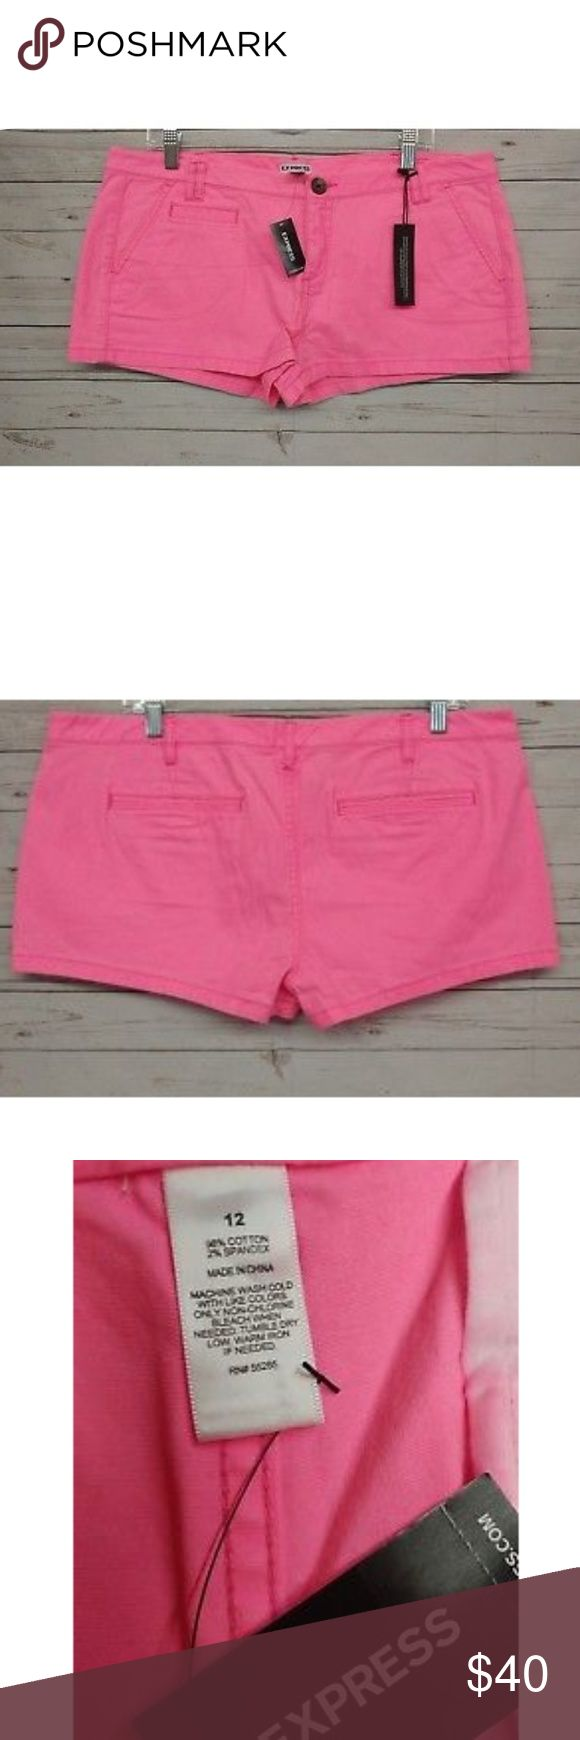 """EXPRESS Hot Pink Shorts Size 12 NEW EXPRESS Women's Hot Pink Shorts   Size 12 NEW Measurements taken flat: 19"""" waist  1.5"""" inseam 9"""" Rise 12"""" leg opening  Brand new with tags!  Fast shipping! Express Shorts"""